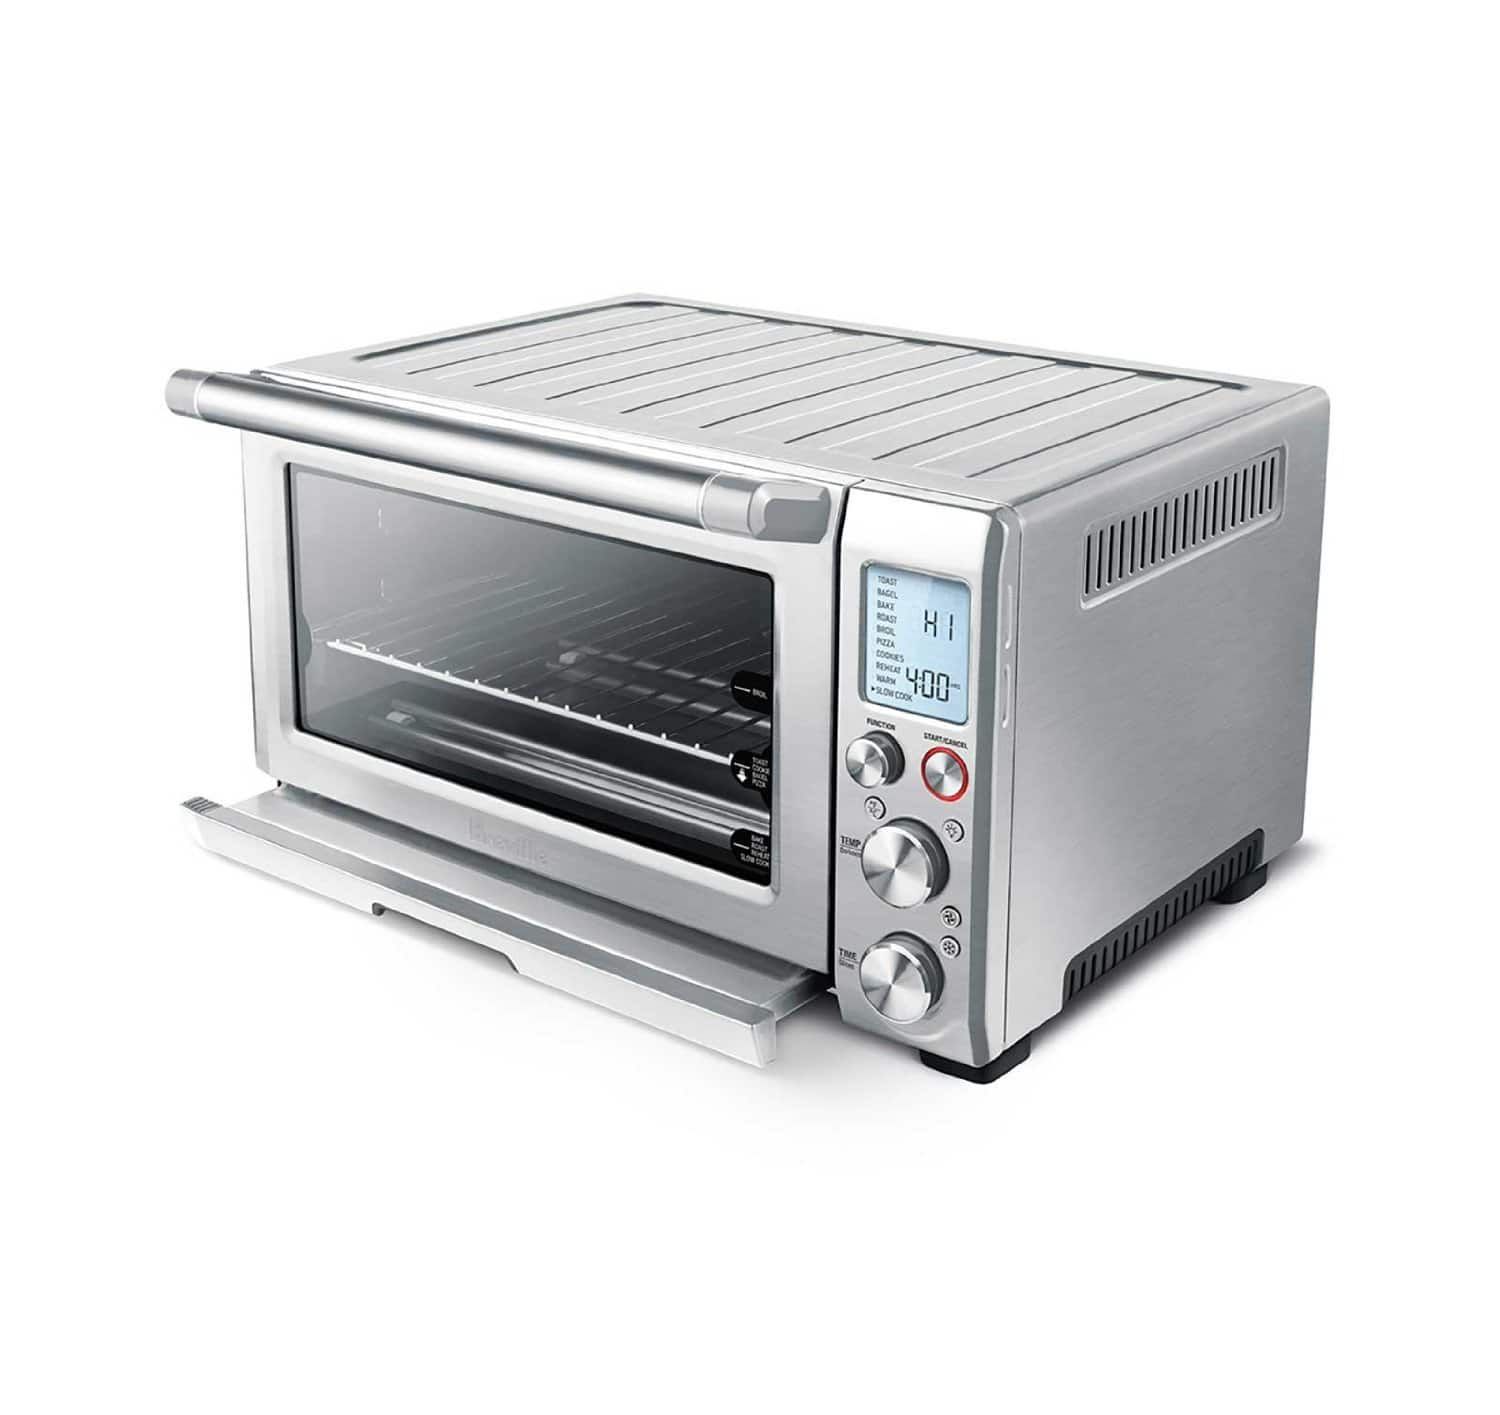 Breville smart oven pro 1800w convection toaster oven for Breville toaster oven